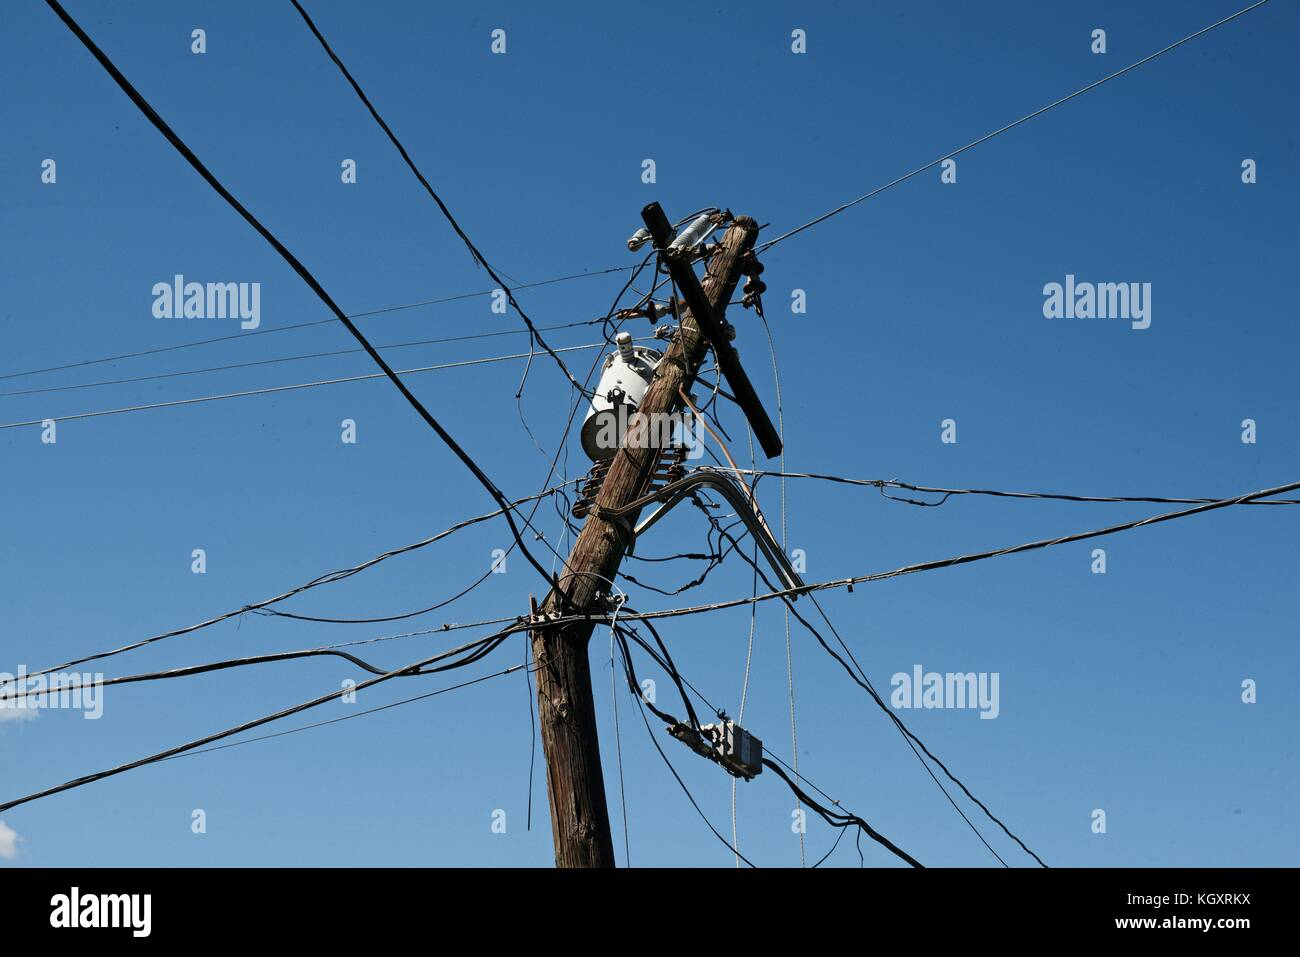 A damaged and unstable power line hangs in the air during relief efforts in the aftermath of Hurricane Maria November Stock Photo